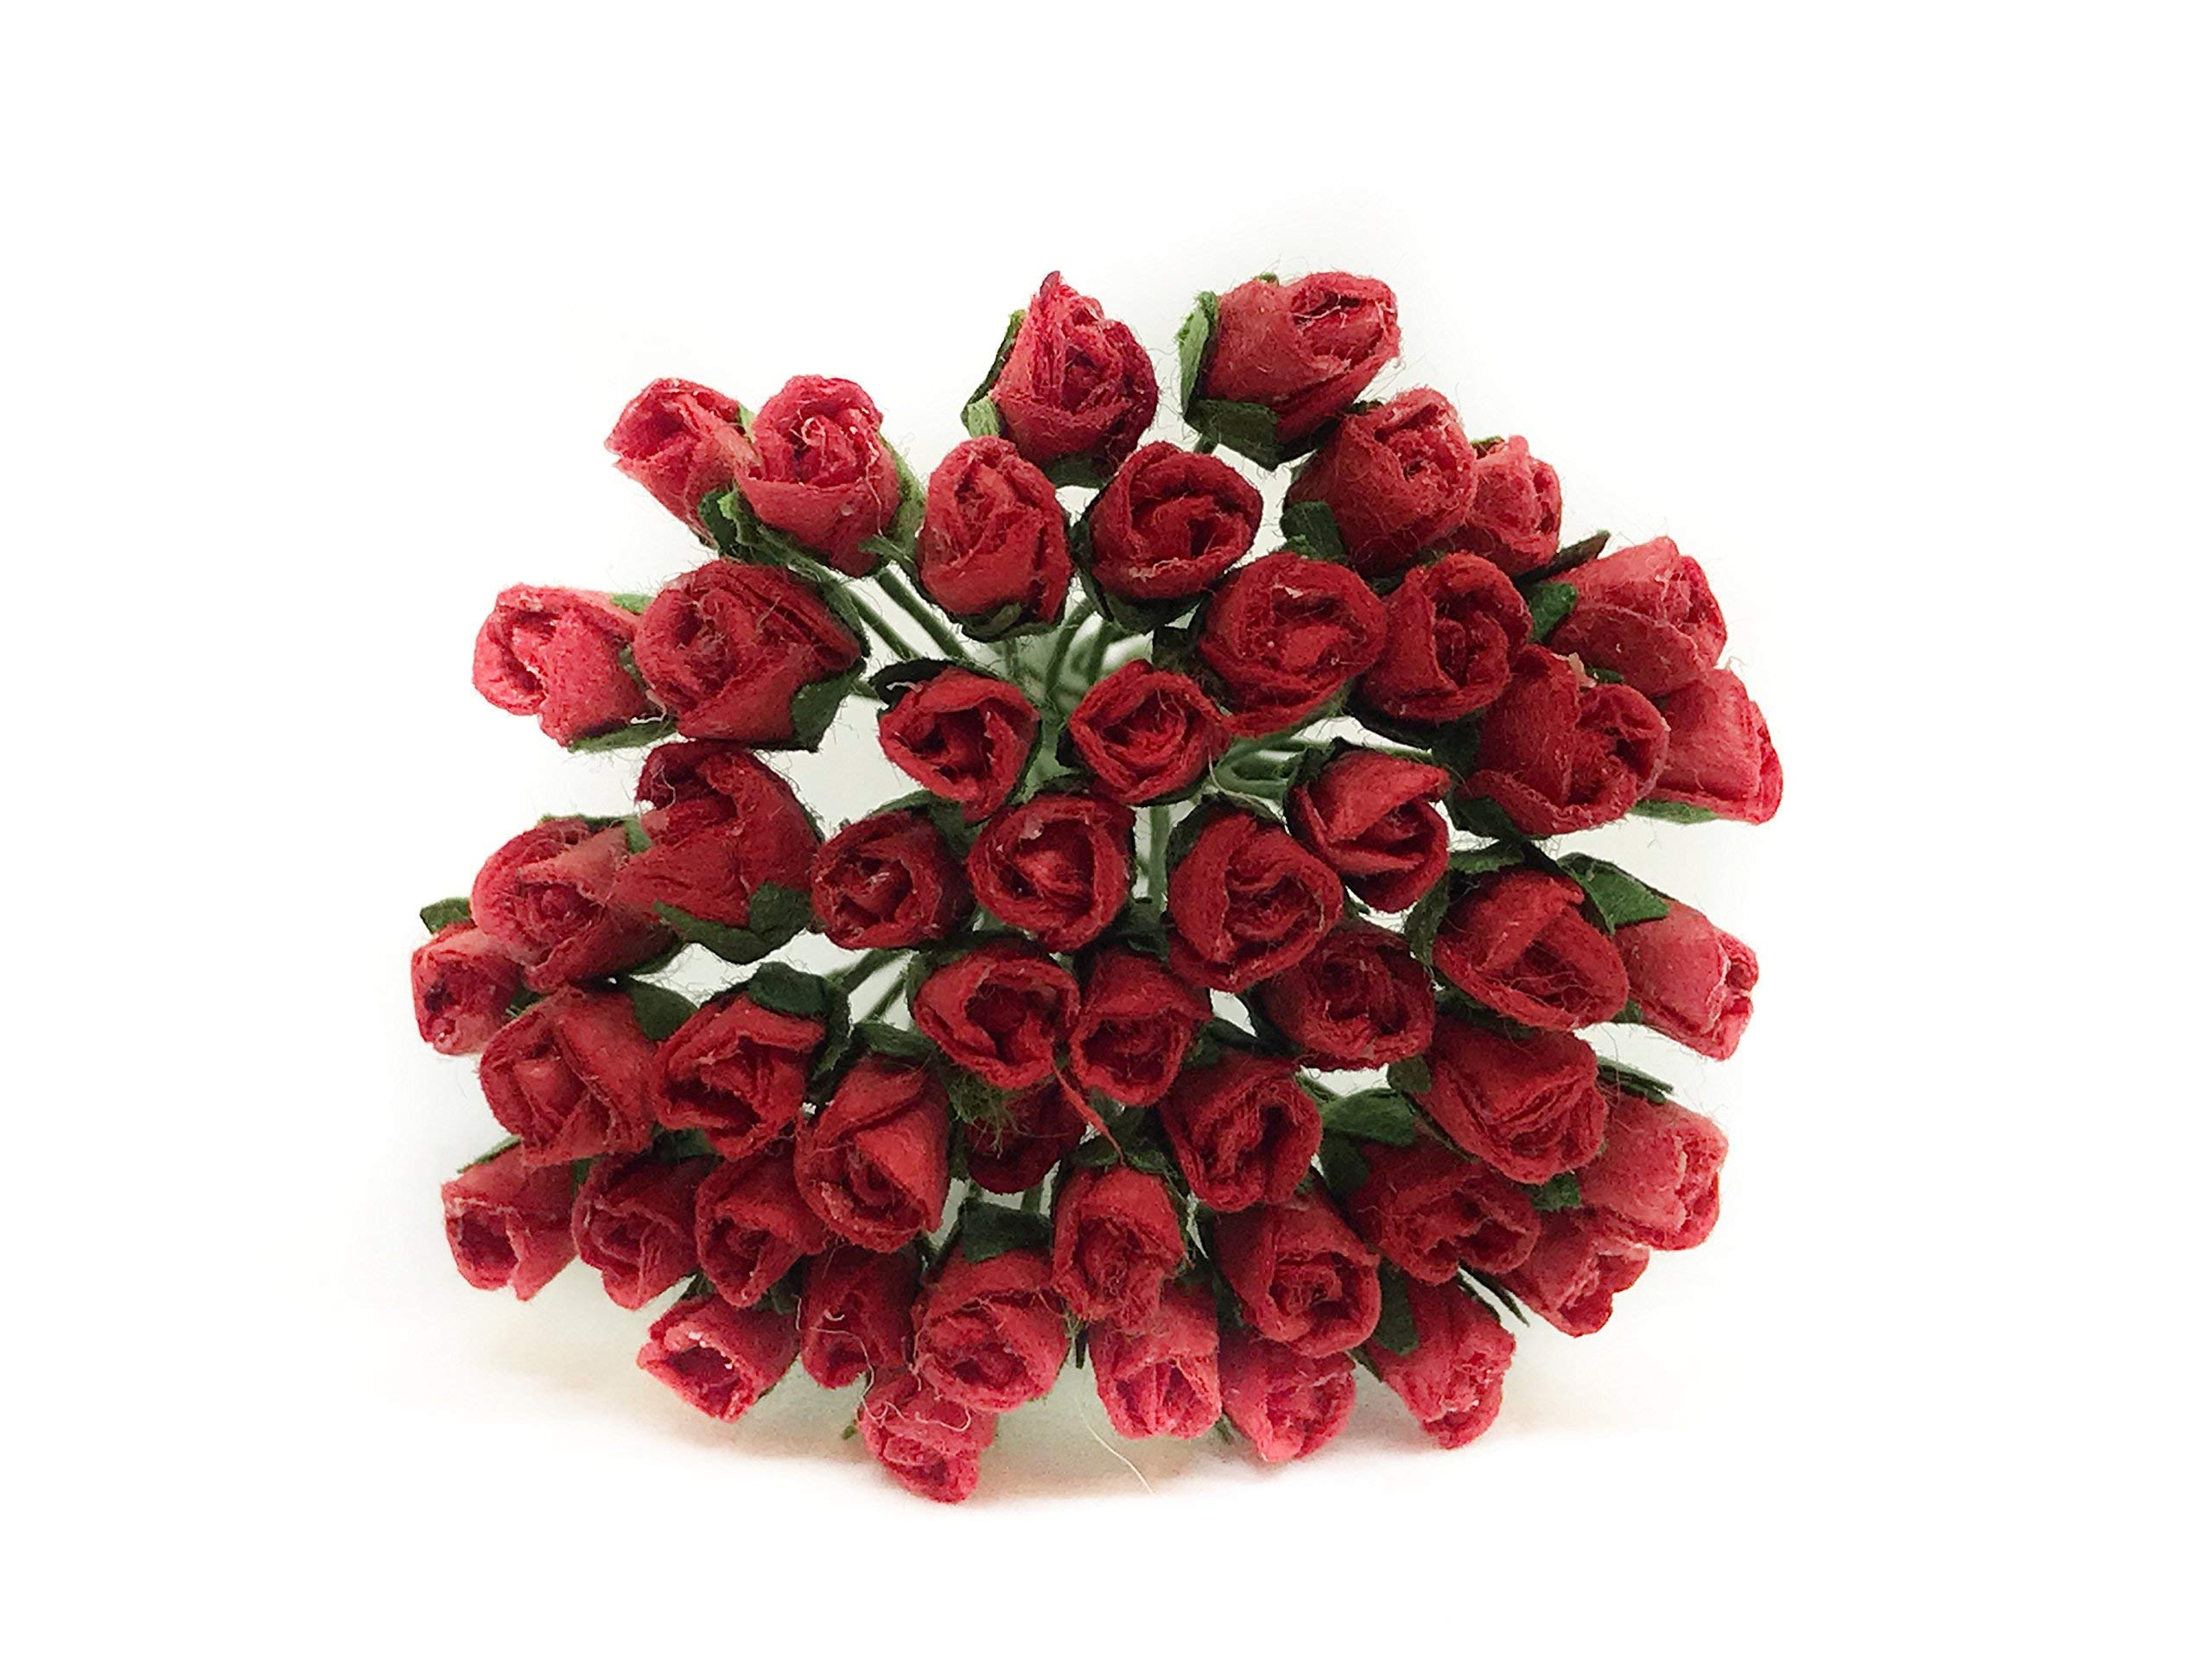 07cm-Red-Paper-Roses-Mulberry-Paper-Flowers-Miniature-Flowers-Mulberry-Paper-Rose-Buds-Miniature-Rose-DIY-Bouquet-Scrapbooking-Flowers-50-Pieces